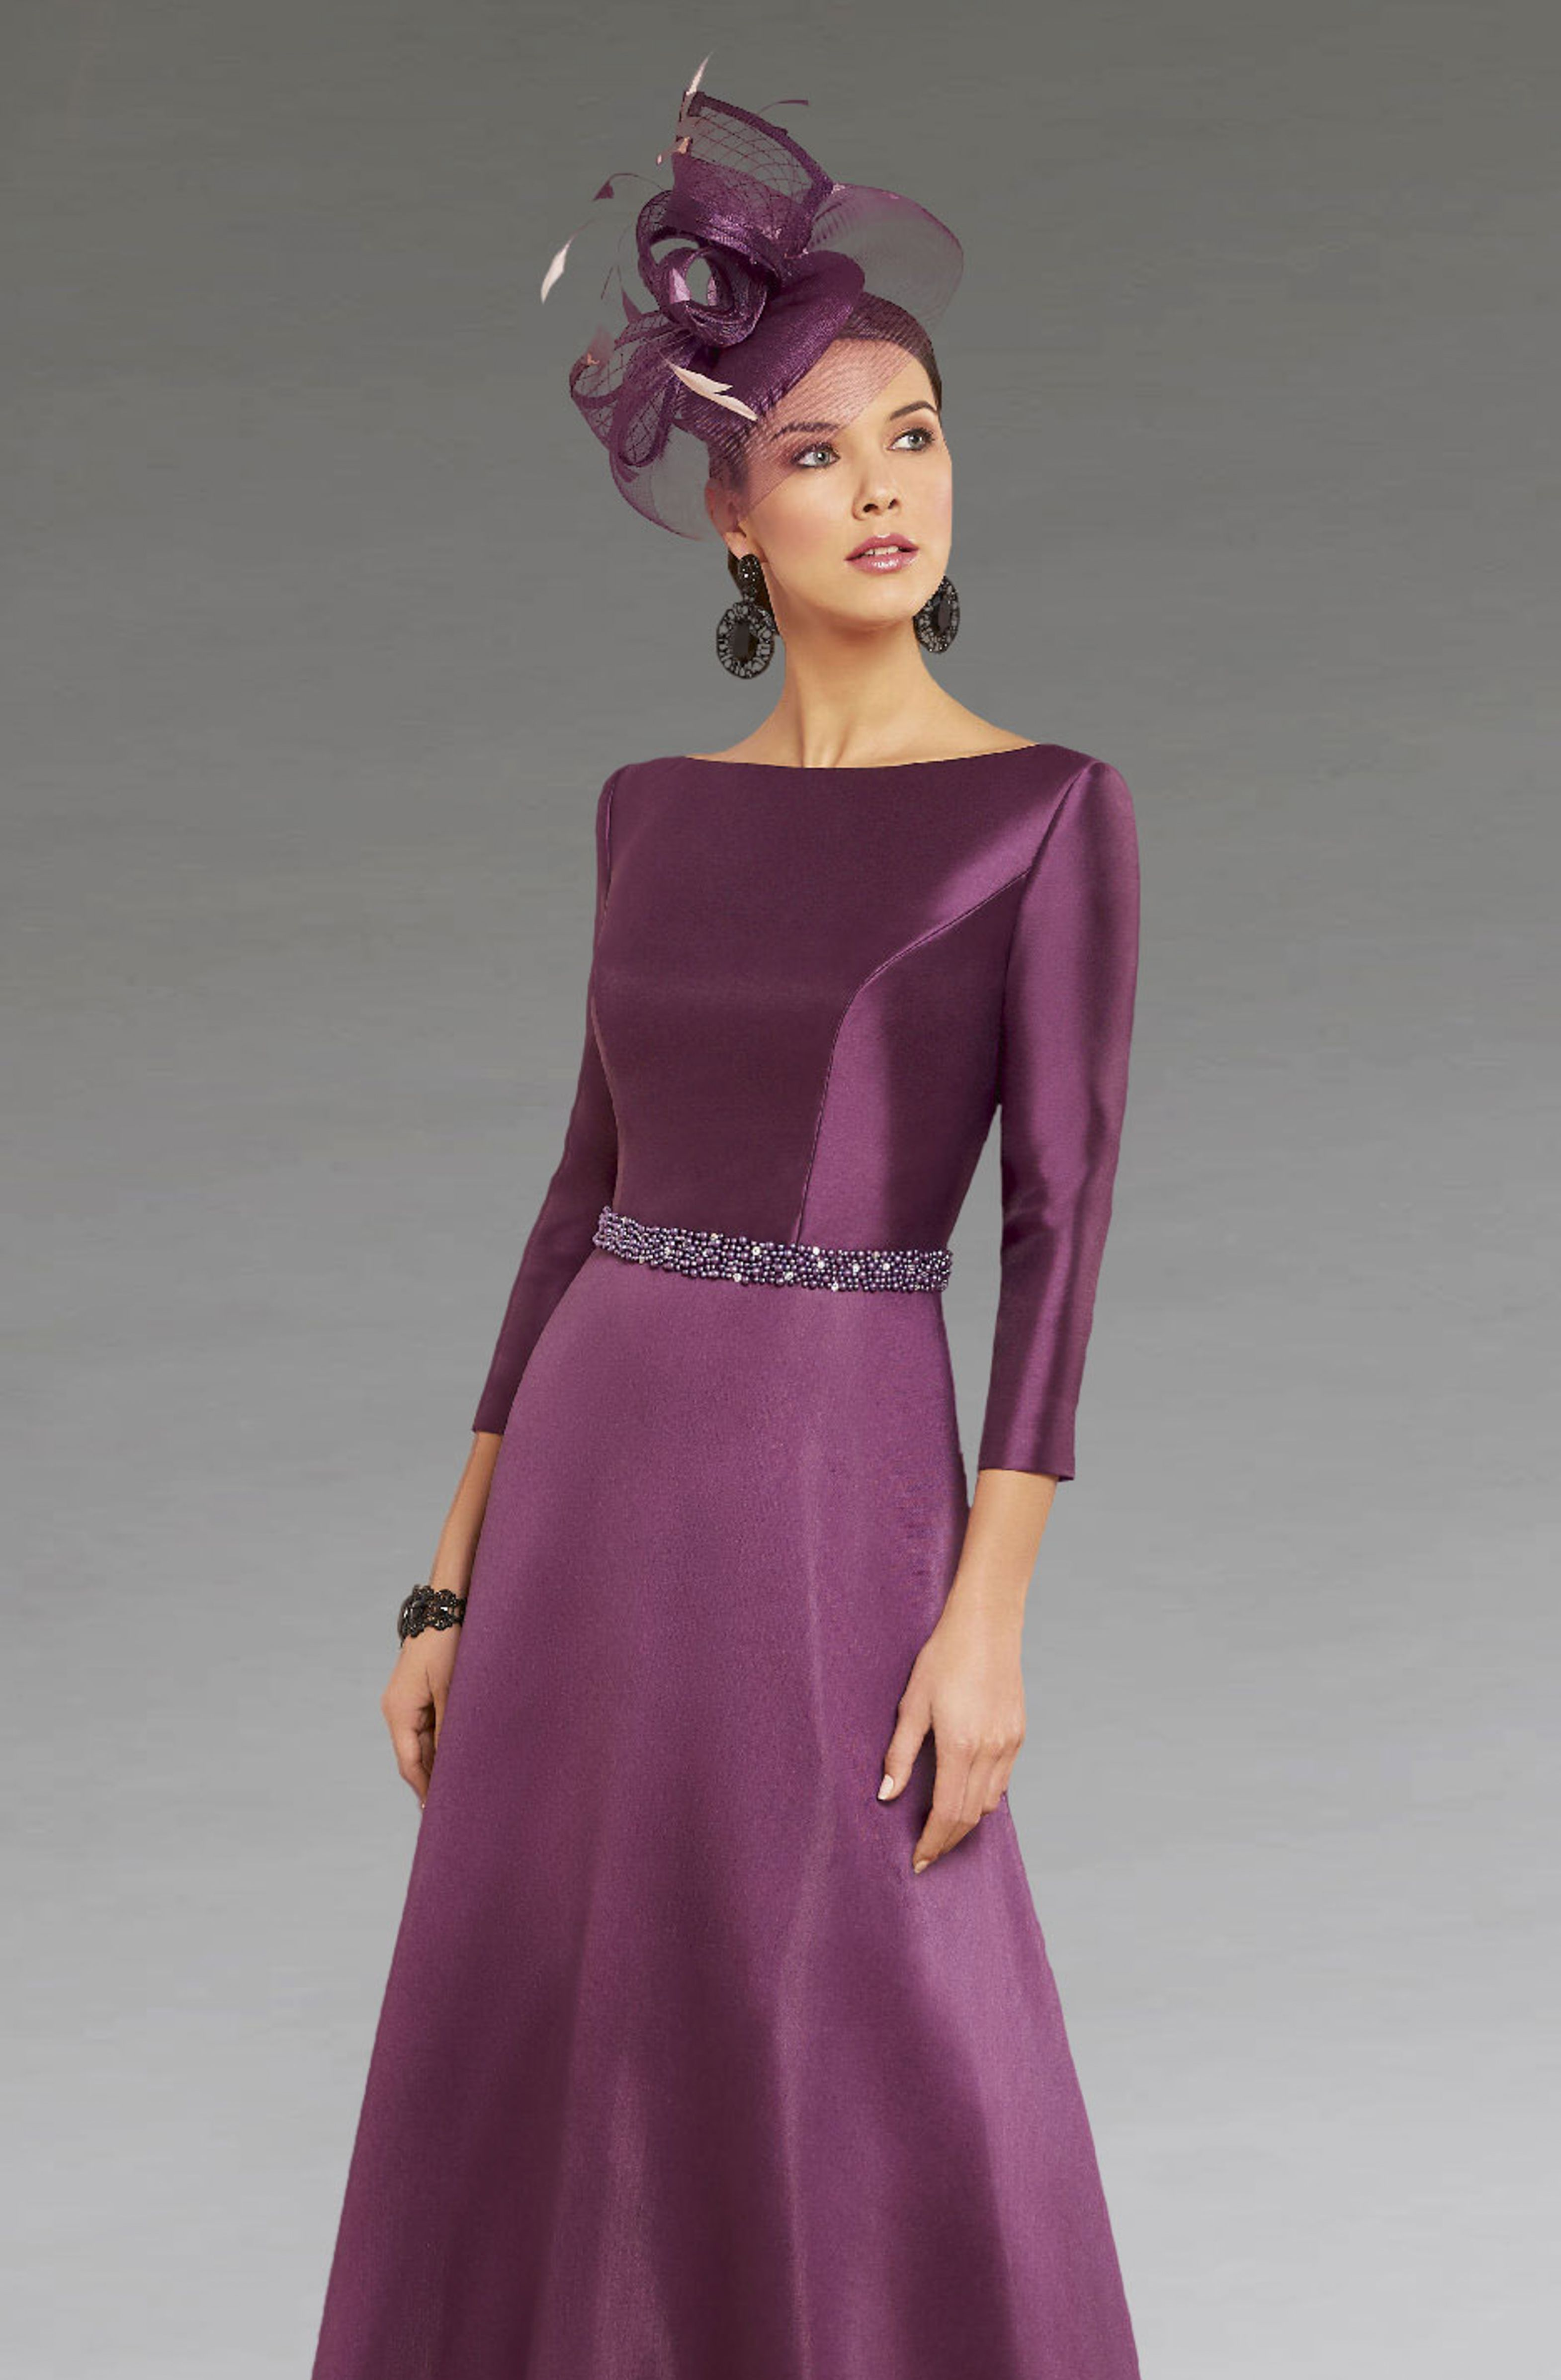 This mid length dress features a beaded waistband to help